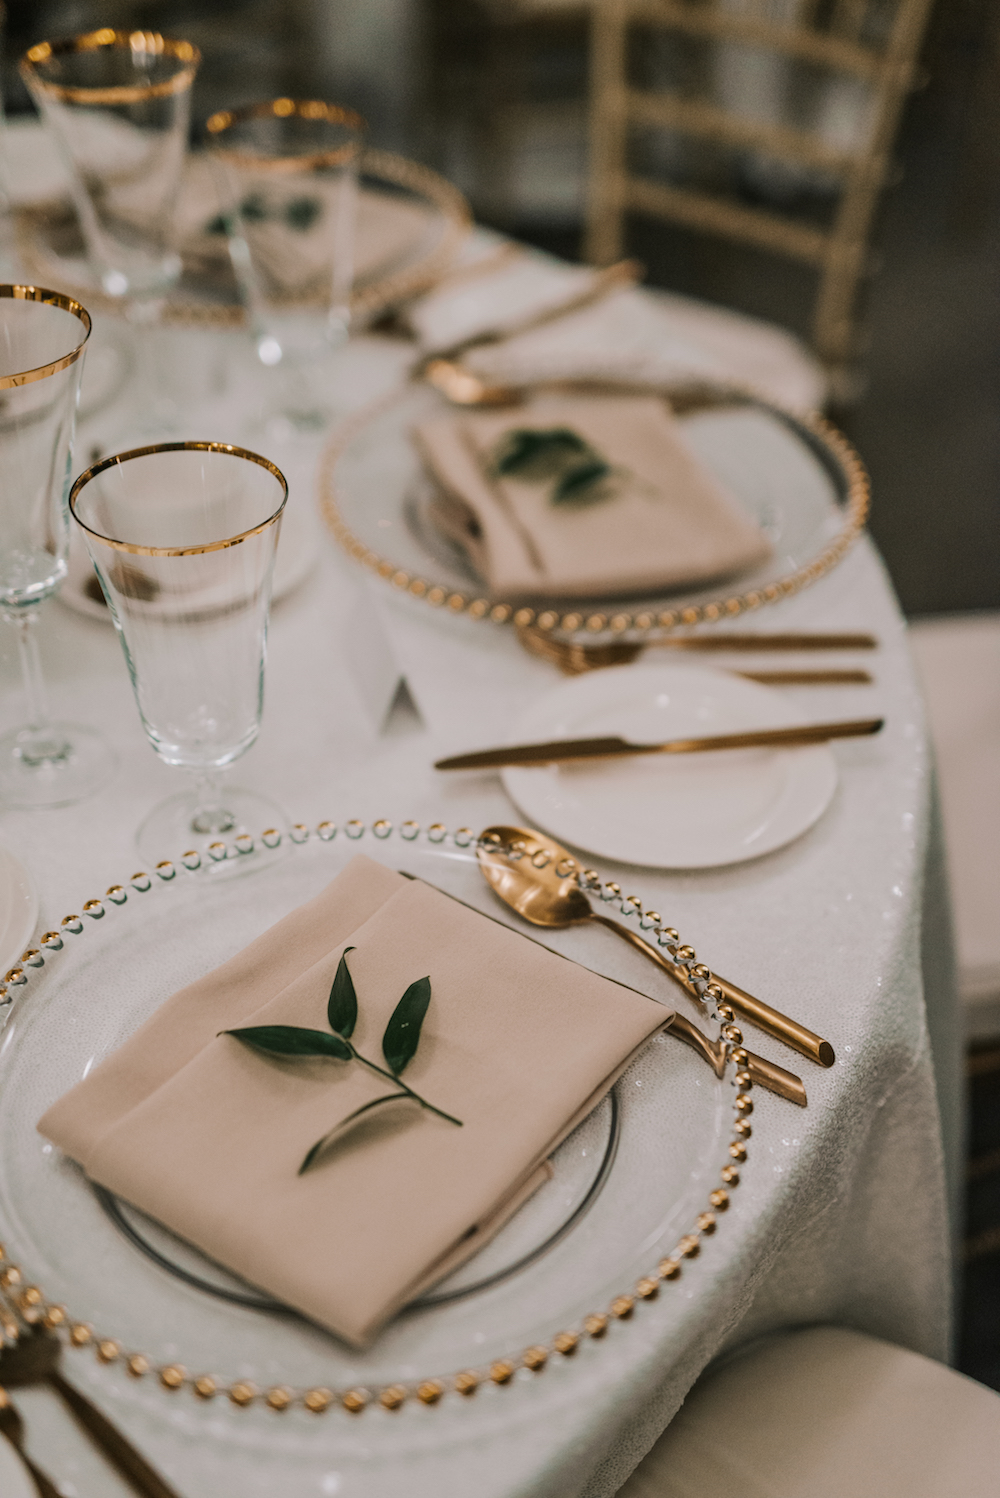 Greenery Sprig on Place Settings - Wedding Flower Ideas